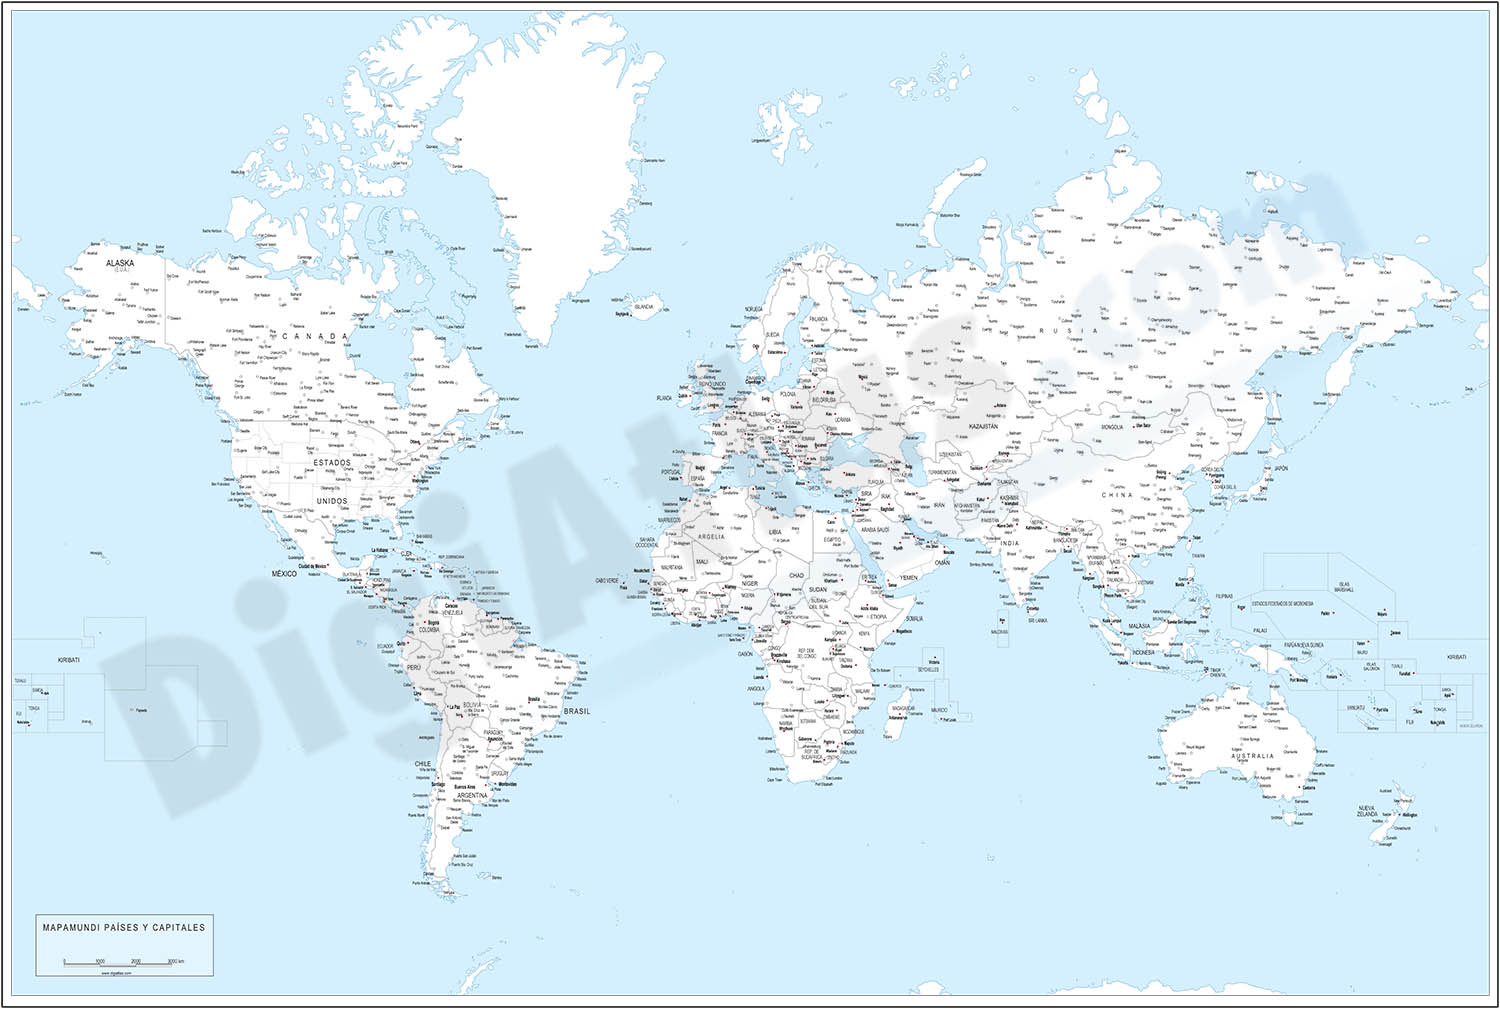 Worldmap - countries and capitals